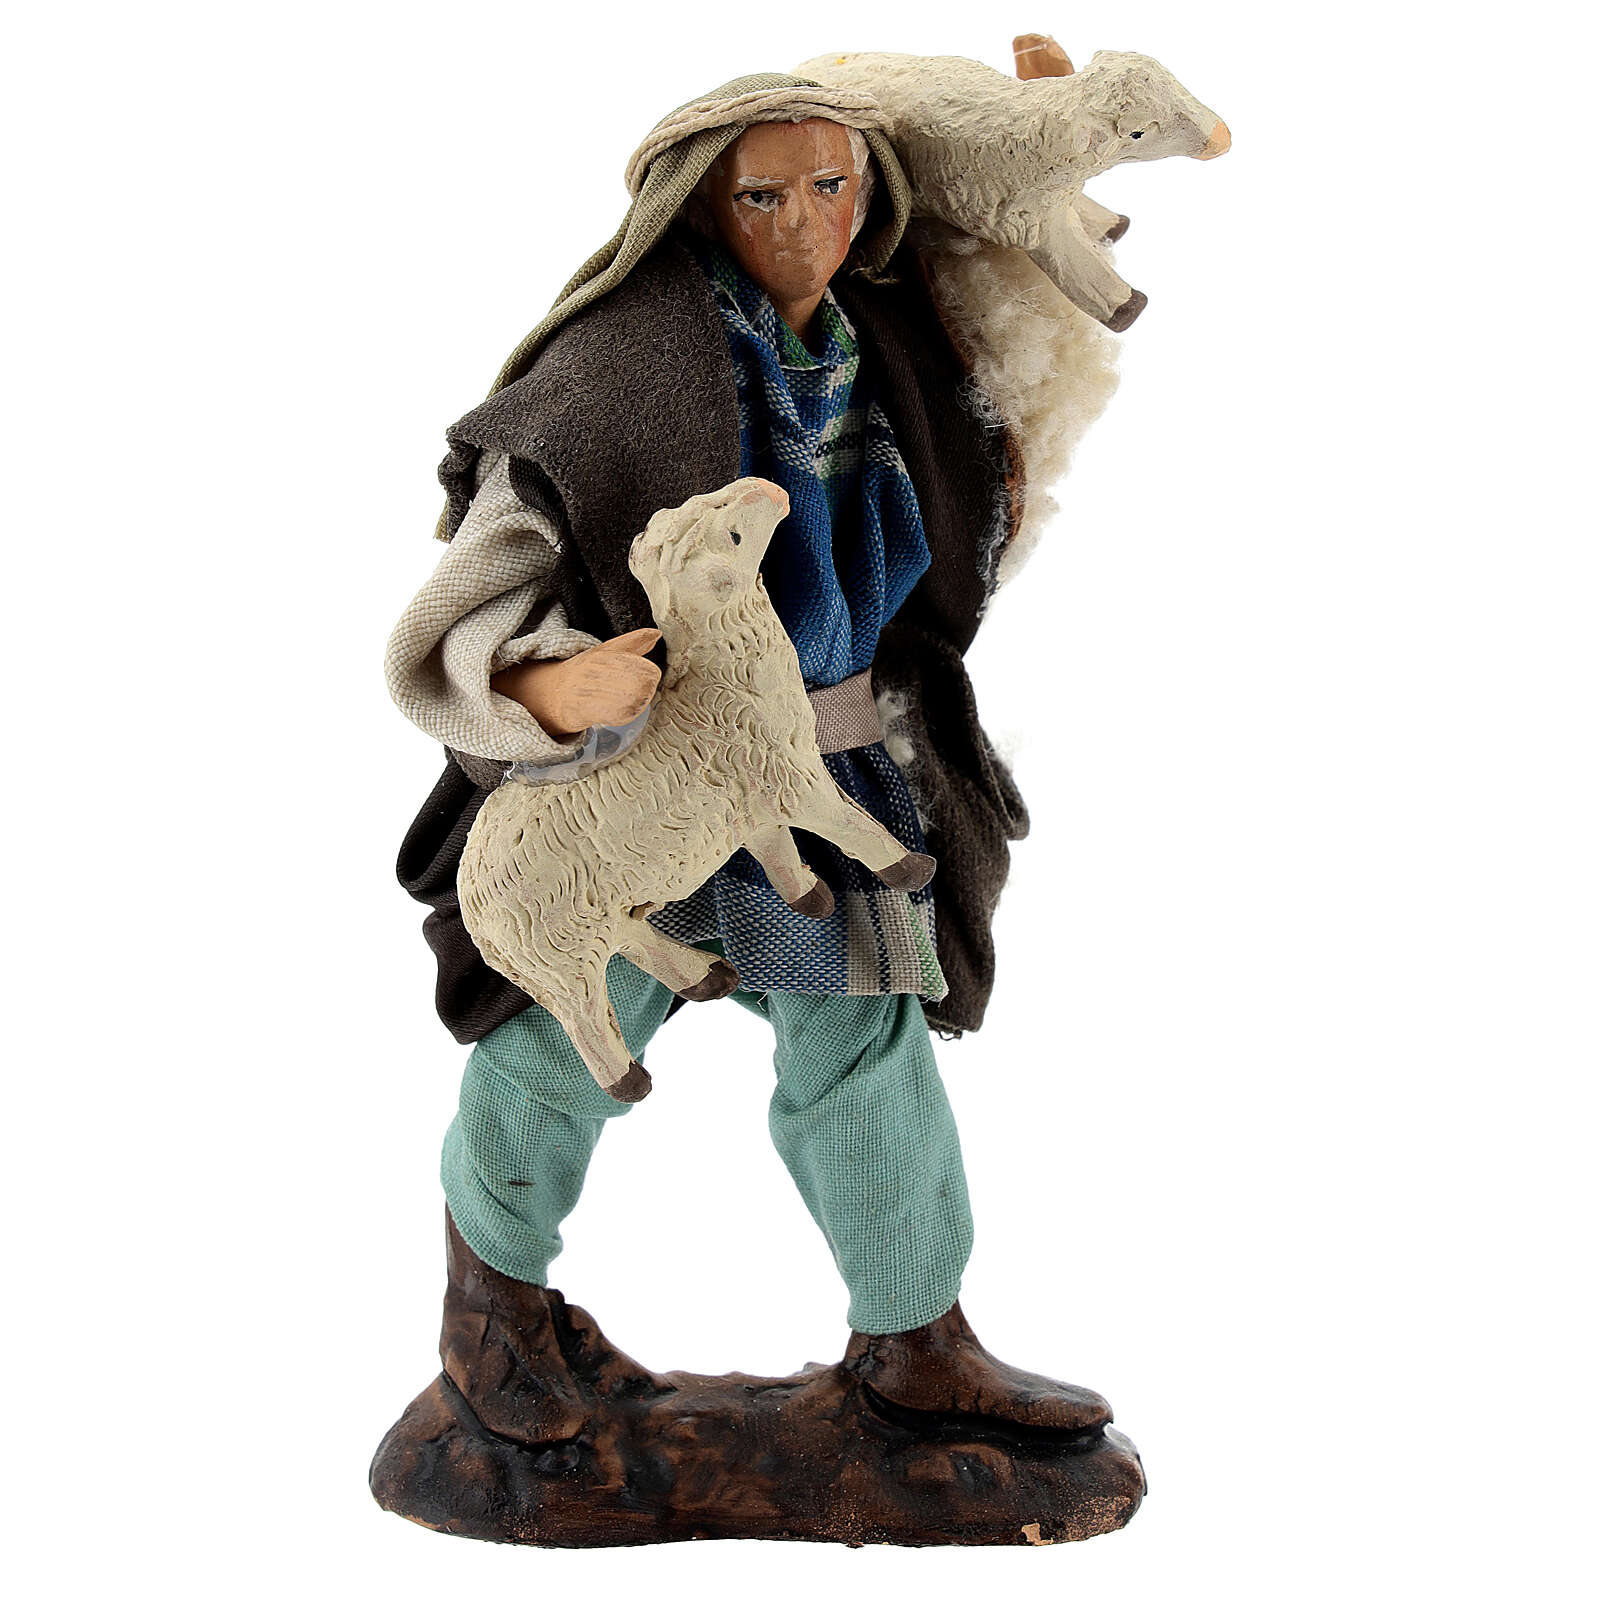 Shepherd with sheep in arms 12 cm Neapolitan nativity figurine 4